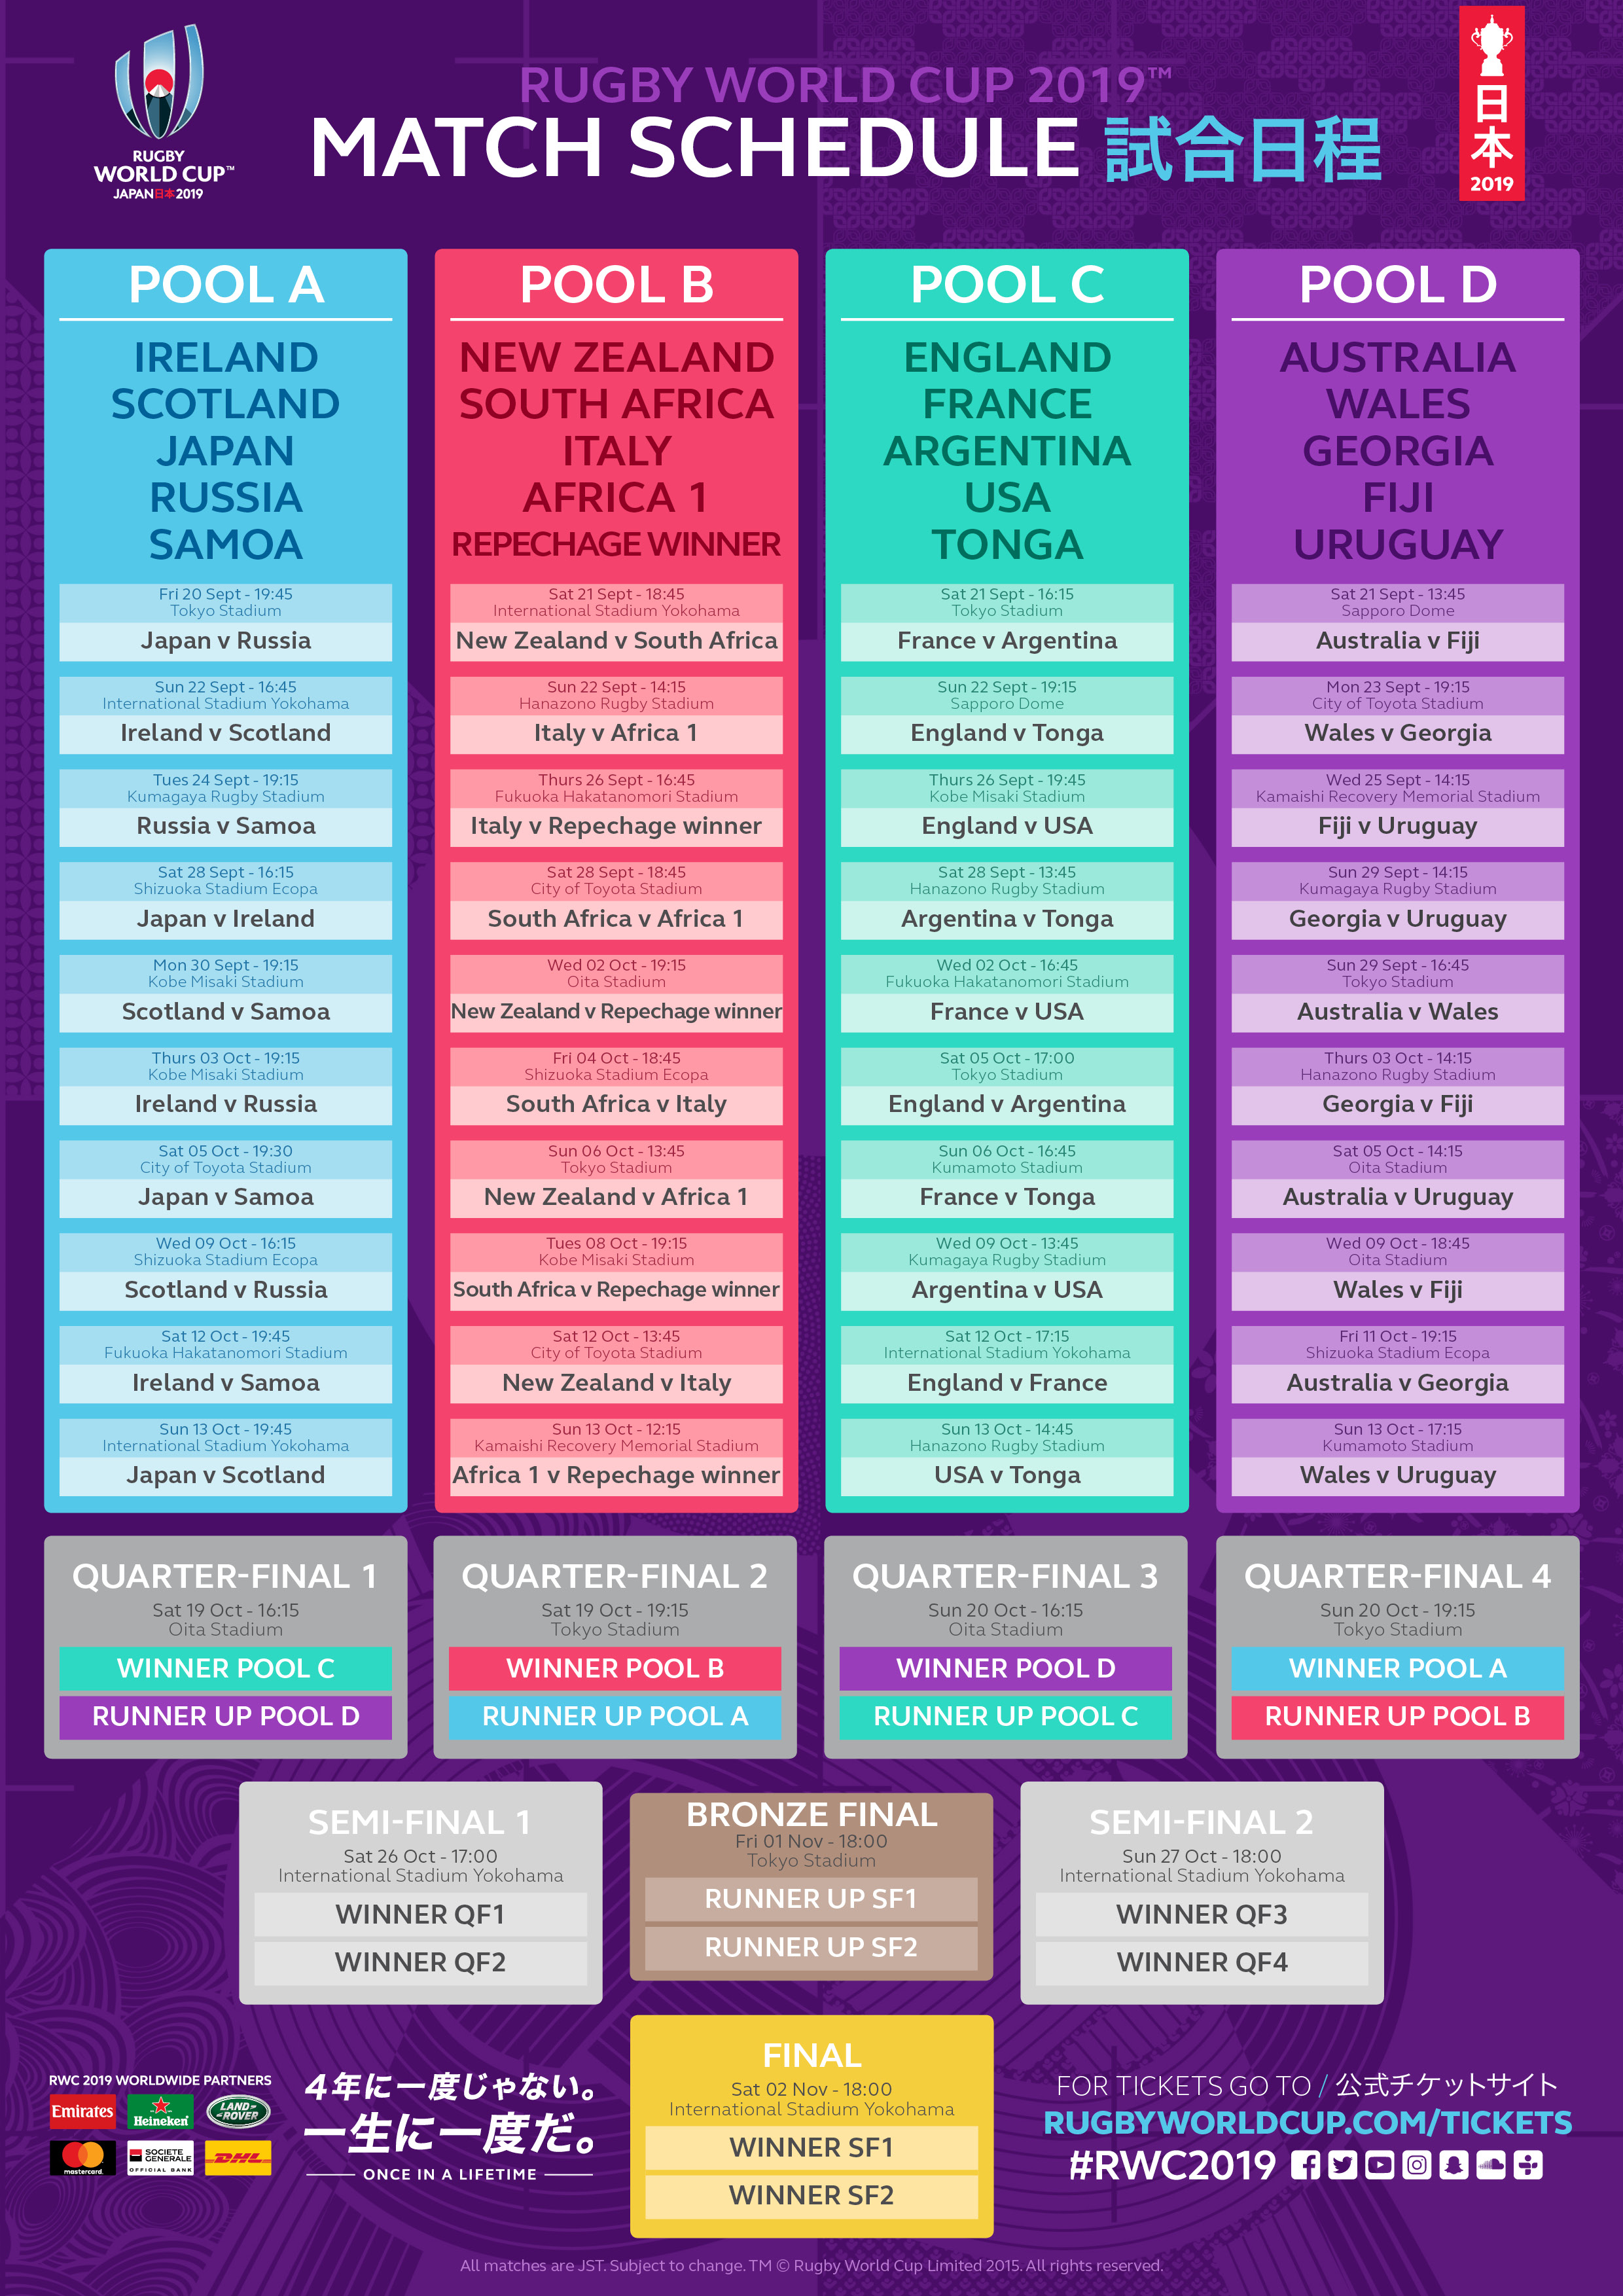 World Cup 2015 Schedule In Pdf Format